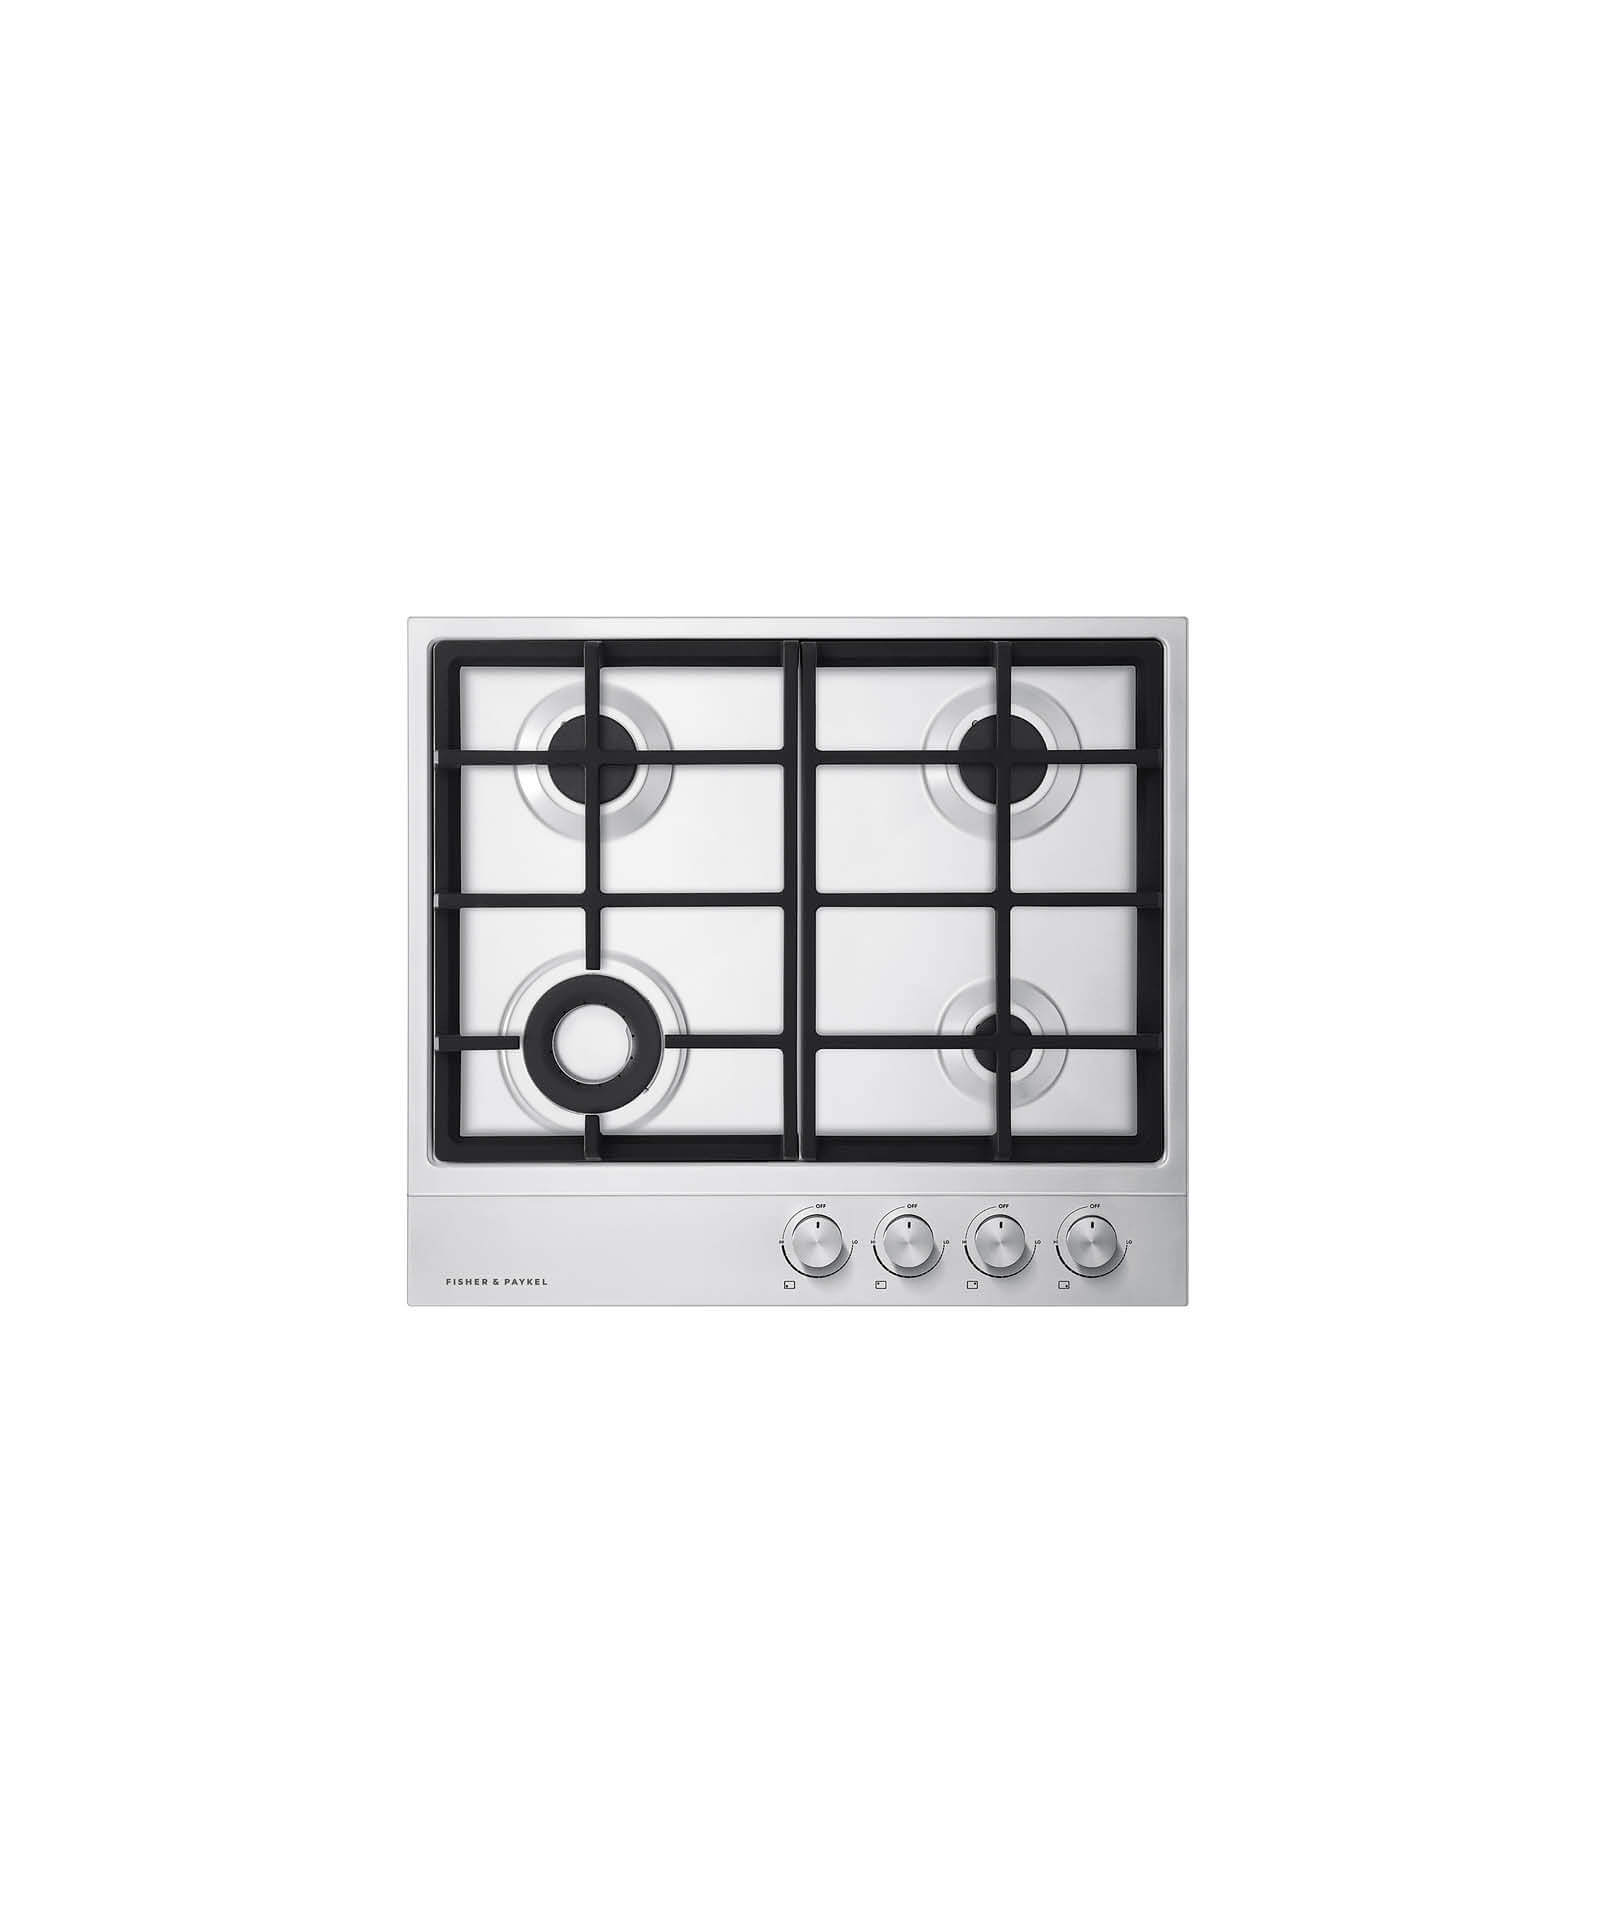 "Fisher and Paykel Gas on Steel Cooktop 24"" 4 Burner"